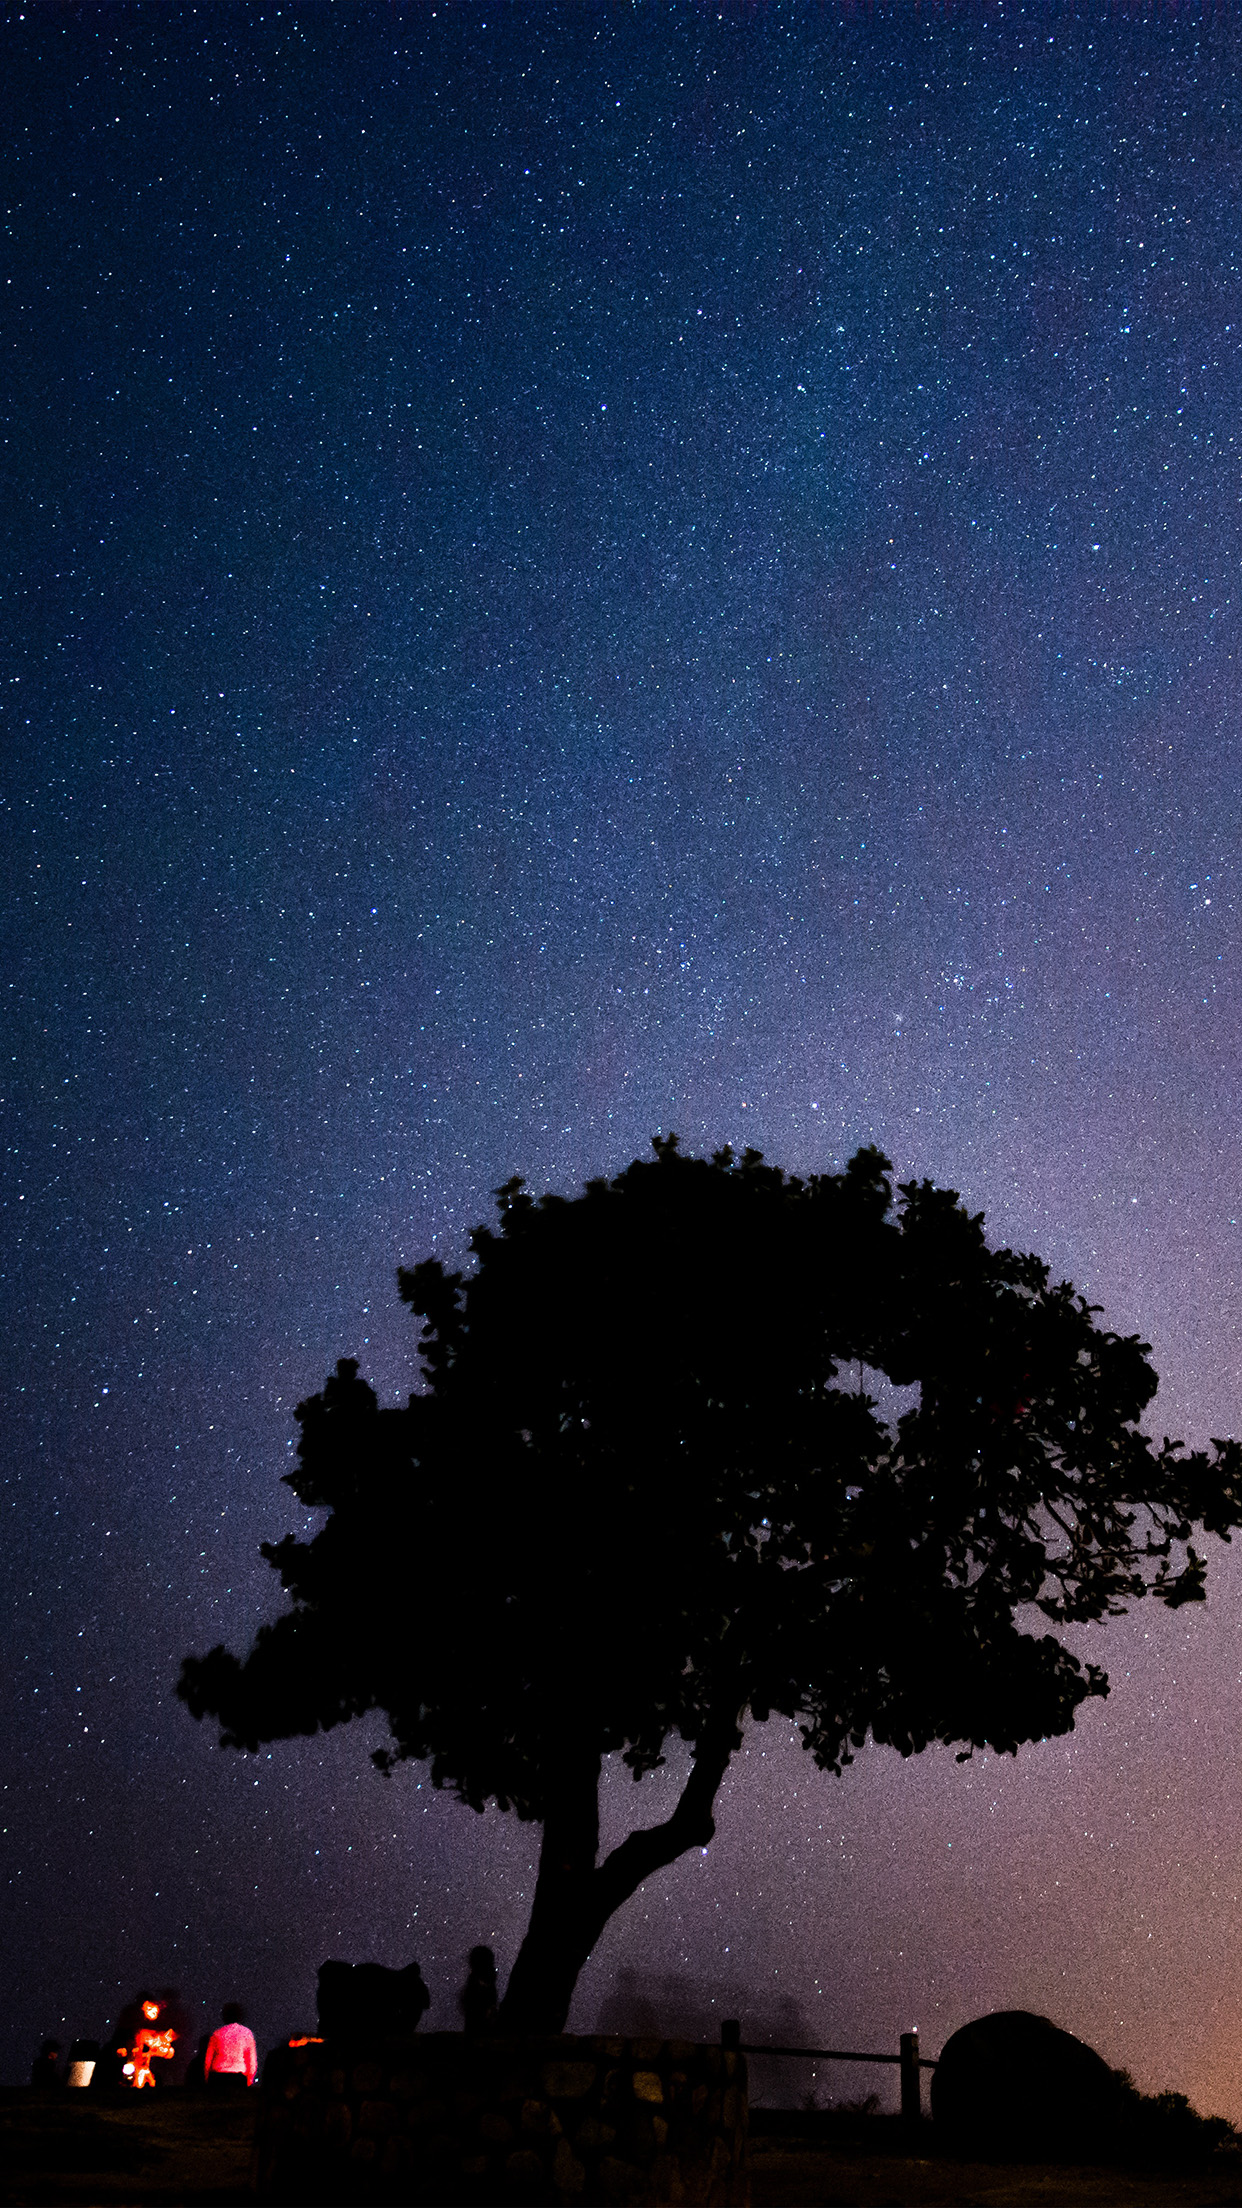 Minimalist Wallpaper Fall Papers Co Iphone Wallpaper Nv18 Night Sky Sunset Star